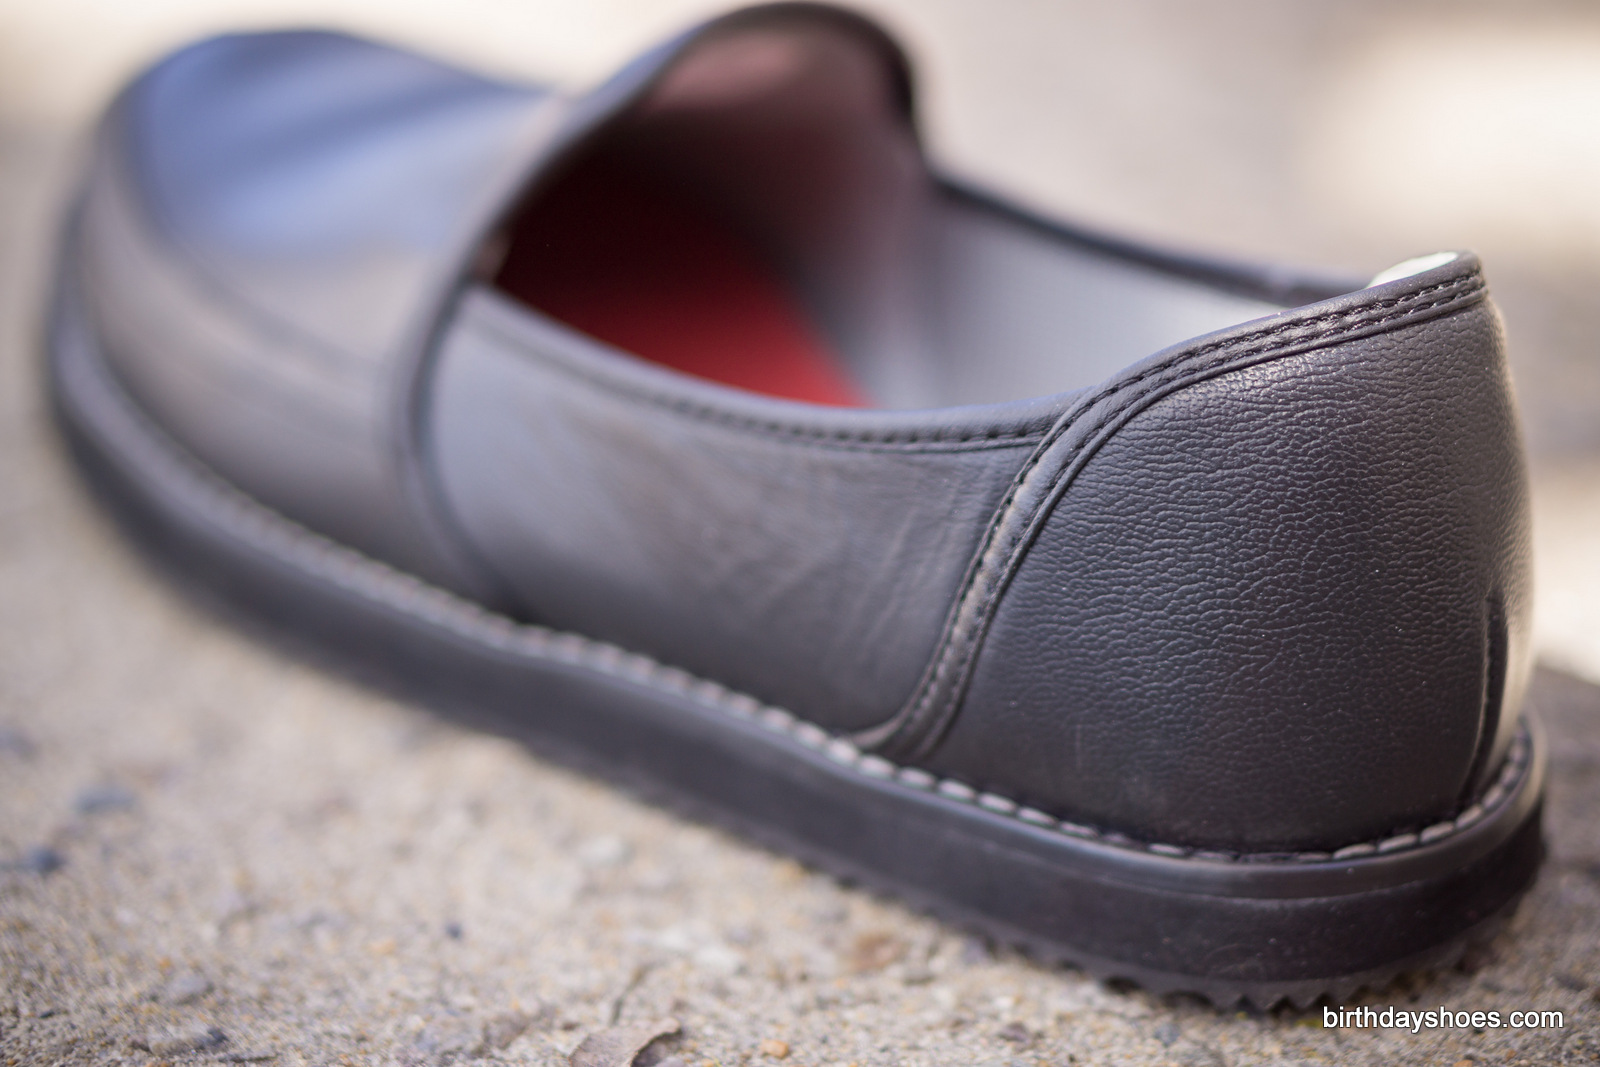 The Anthony Alan Loafer is my personal favorite. Sleek, comfortable, and easy to wear